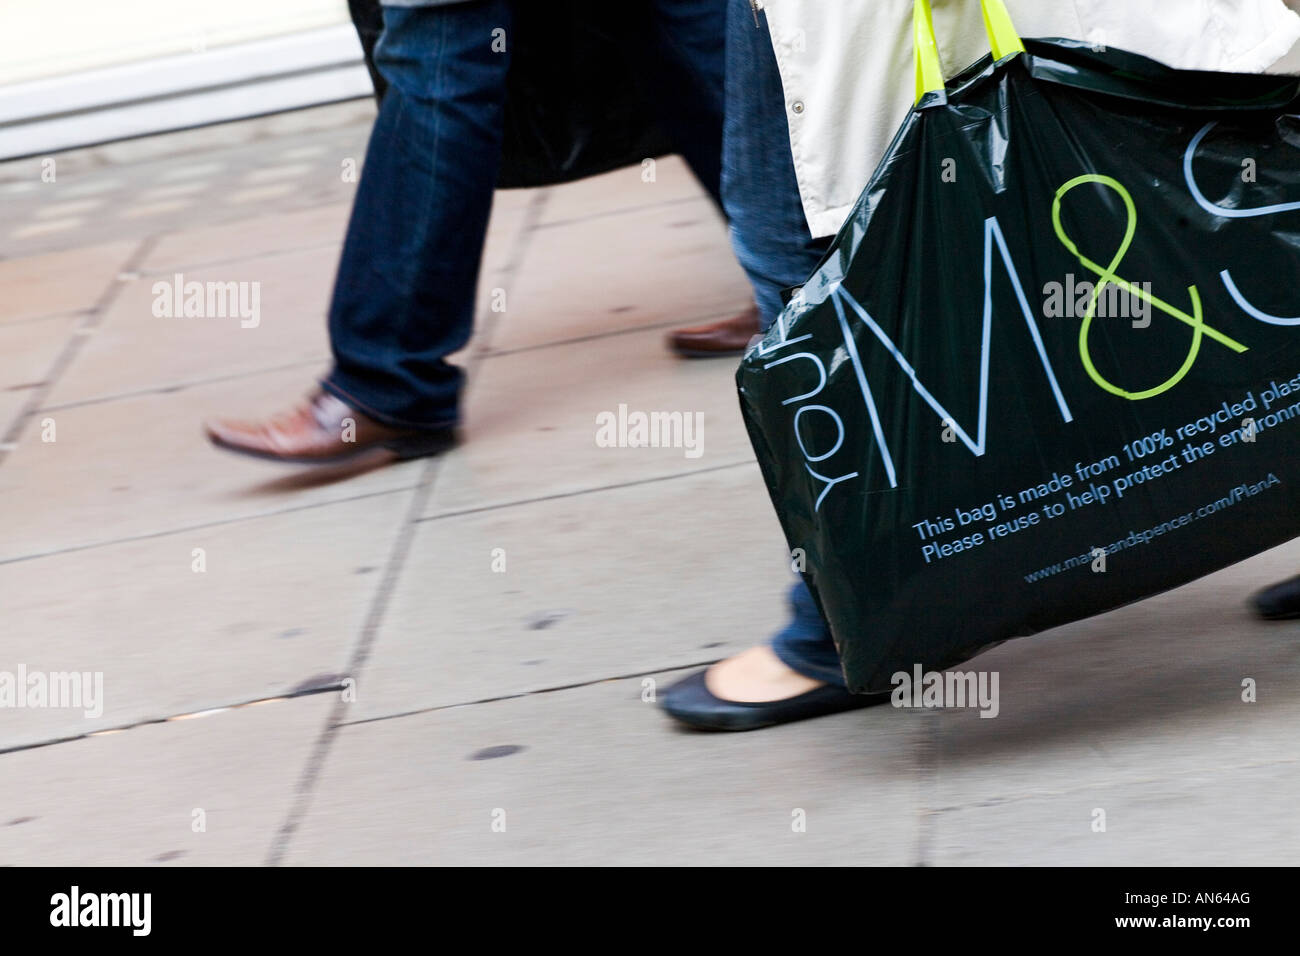 9527ac9b3948 Marks And Spencer Bag Stock Photos   Marks And Spencer Bag Stock ...